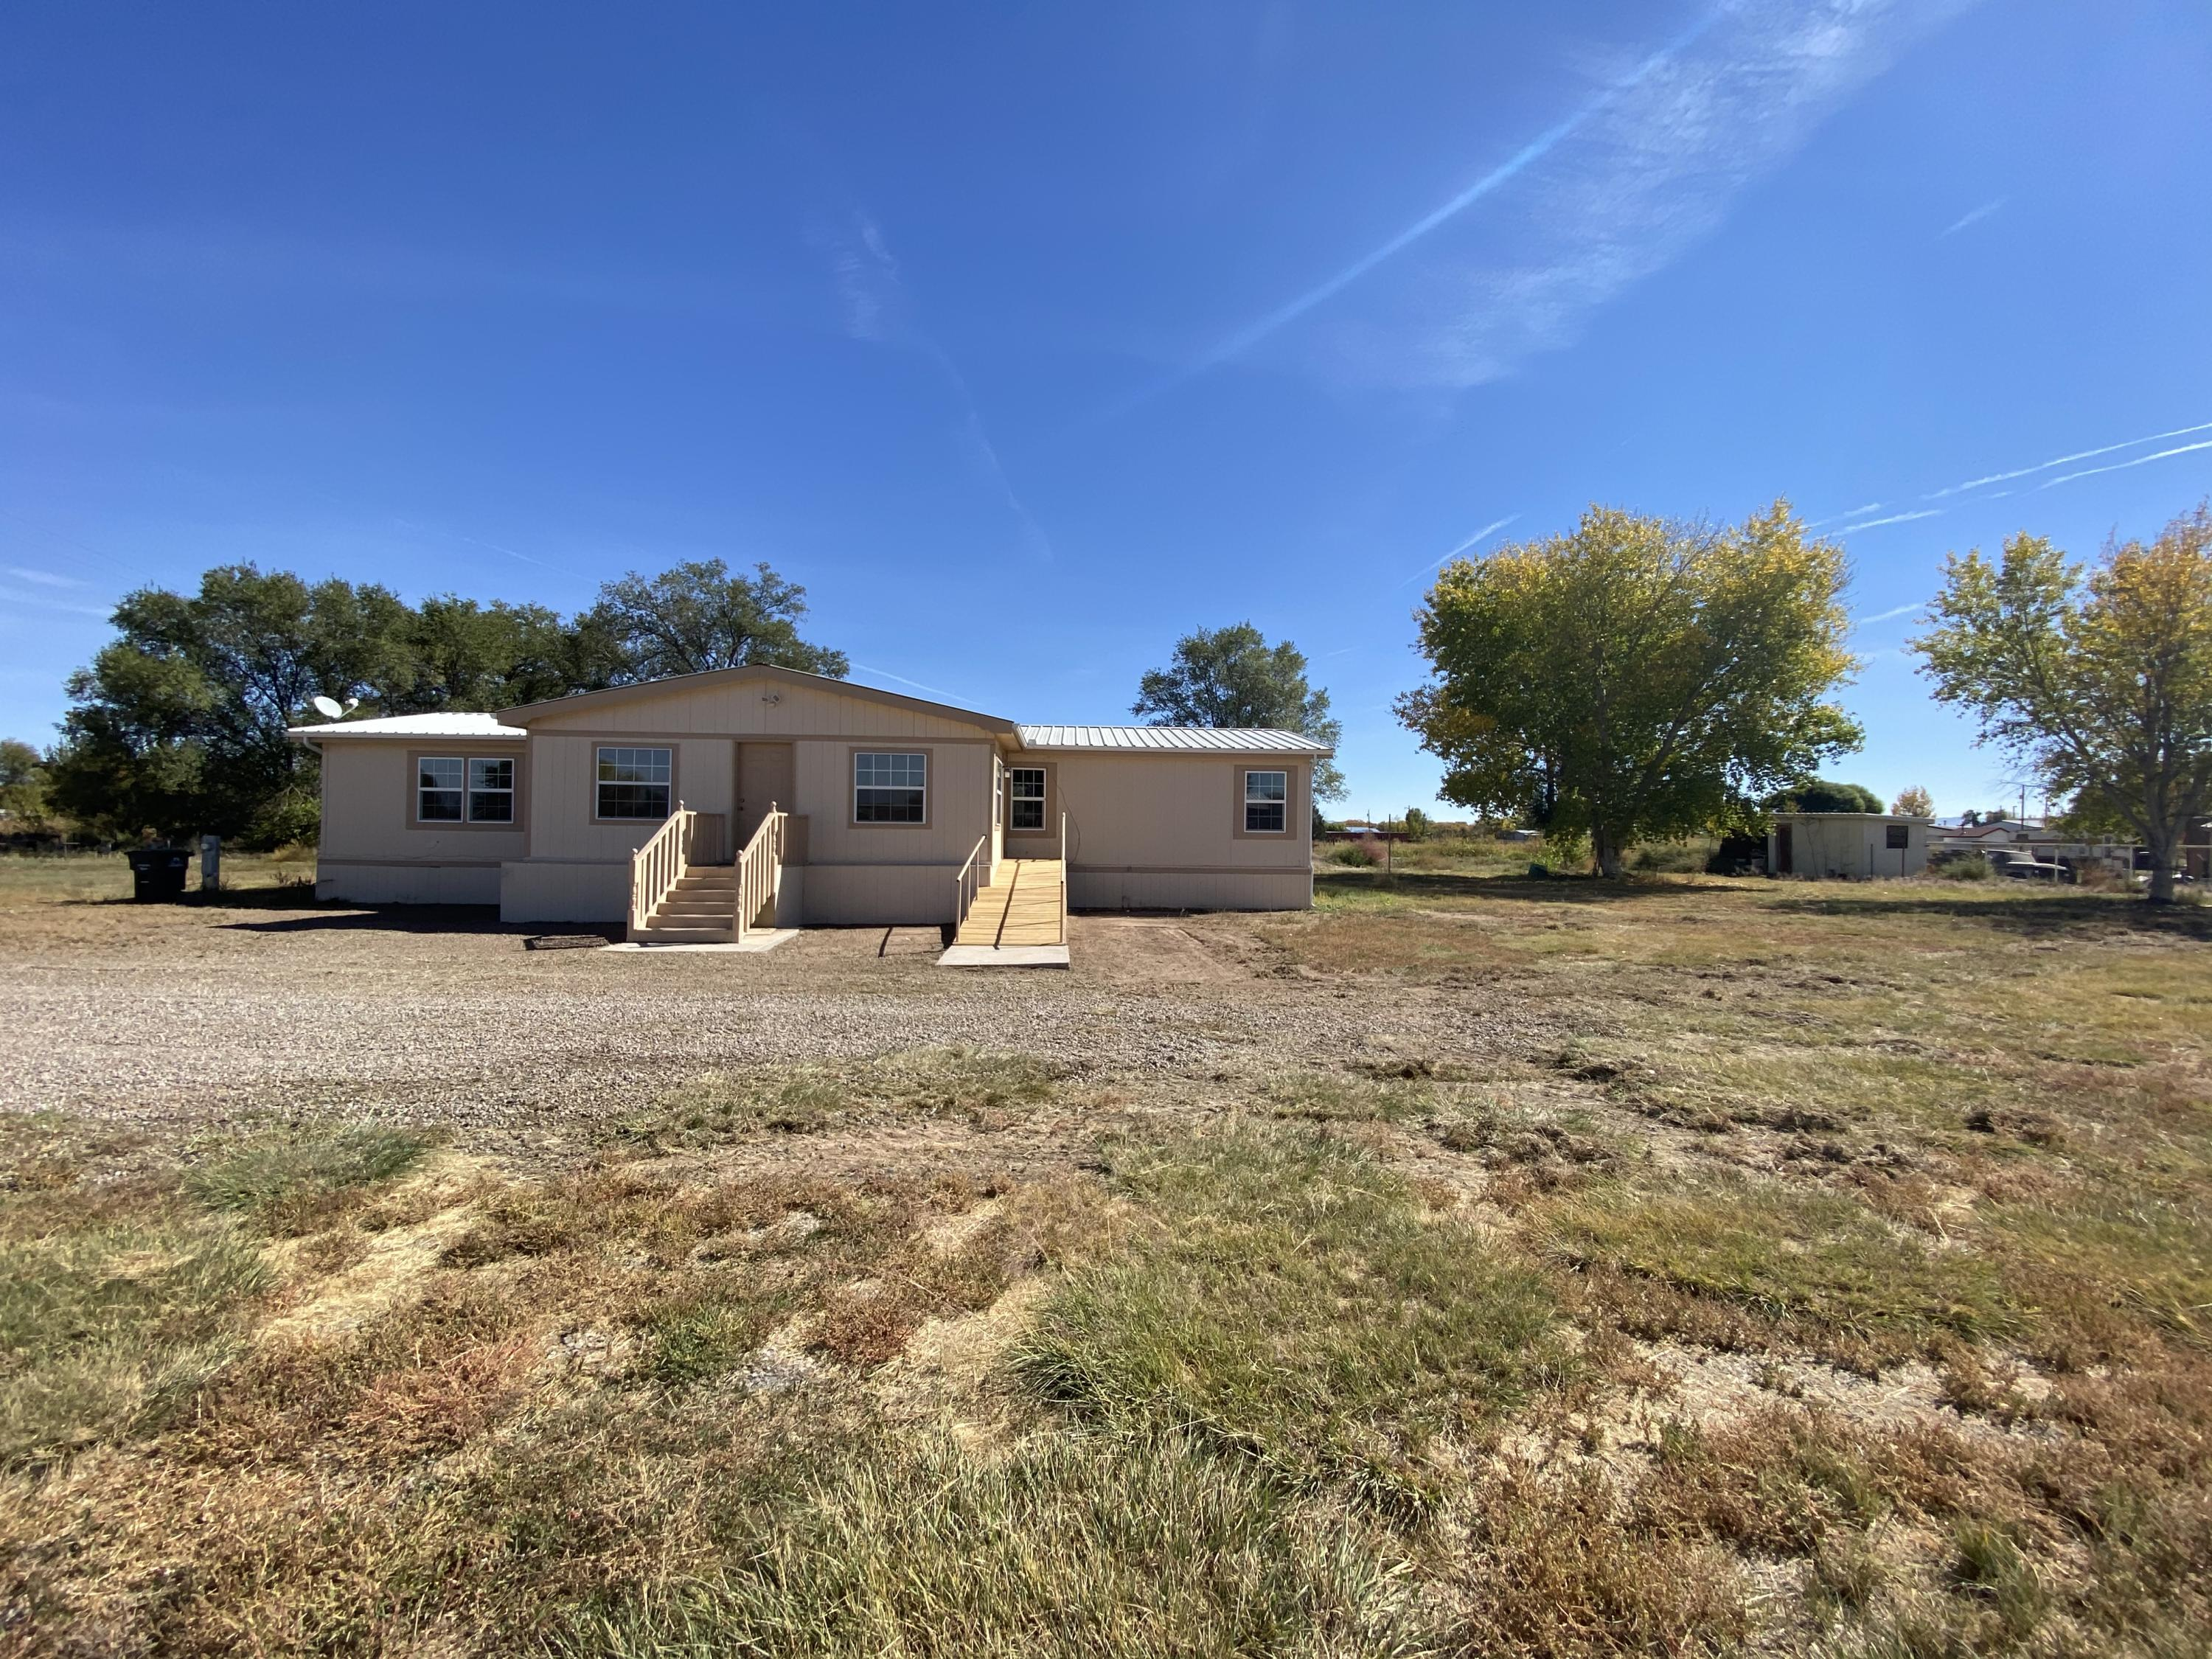 13 JUAN CHAVEZ Y BACA Property Photo - Jarales, NM real estate listing